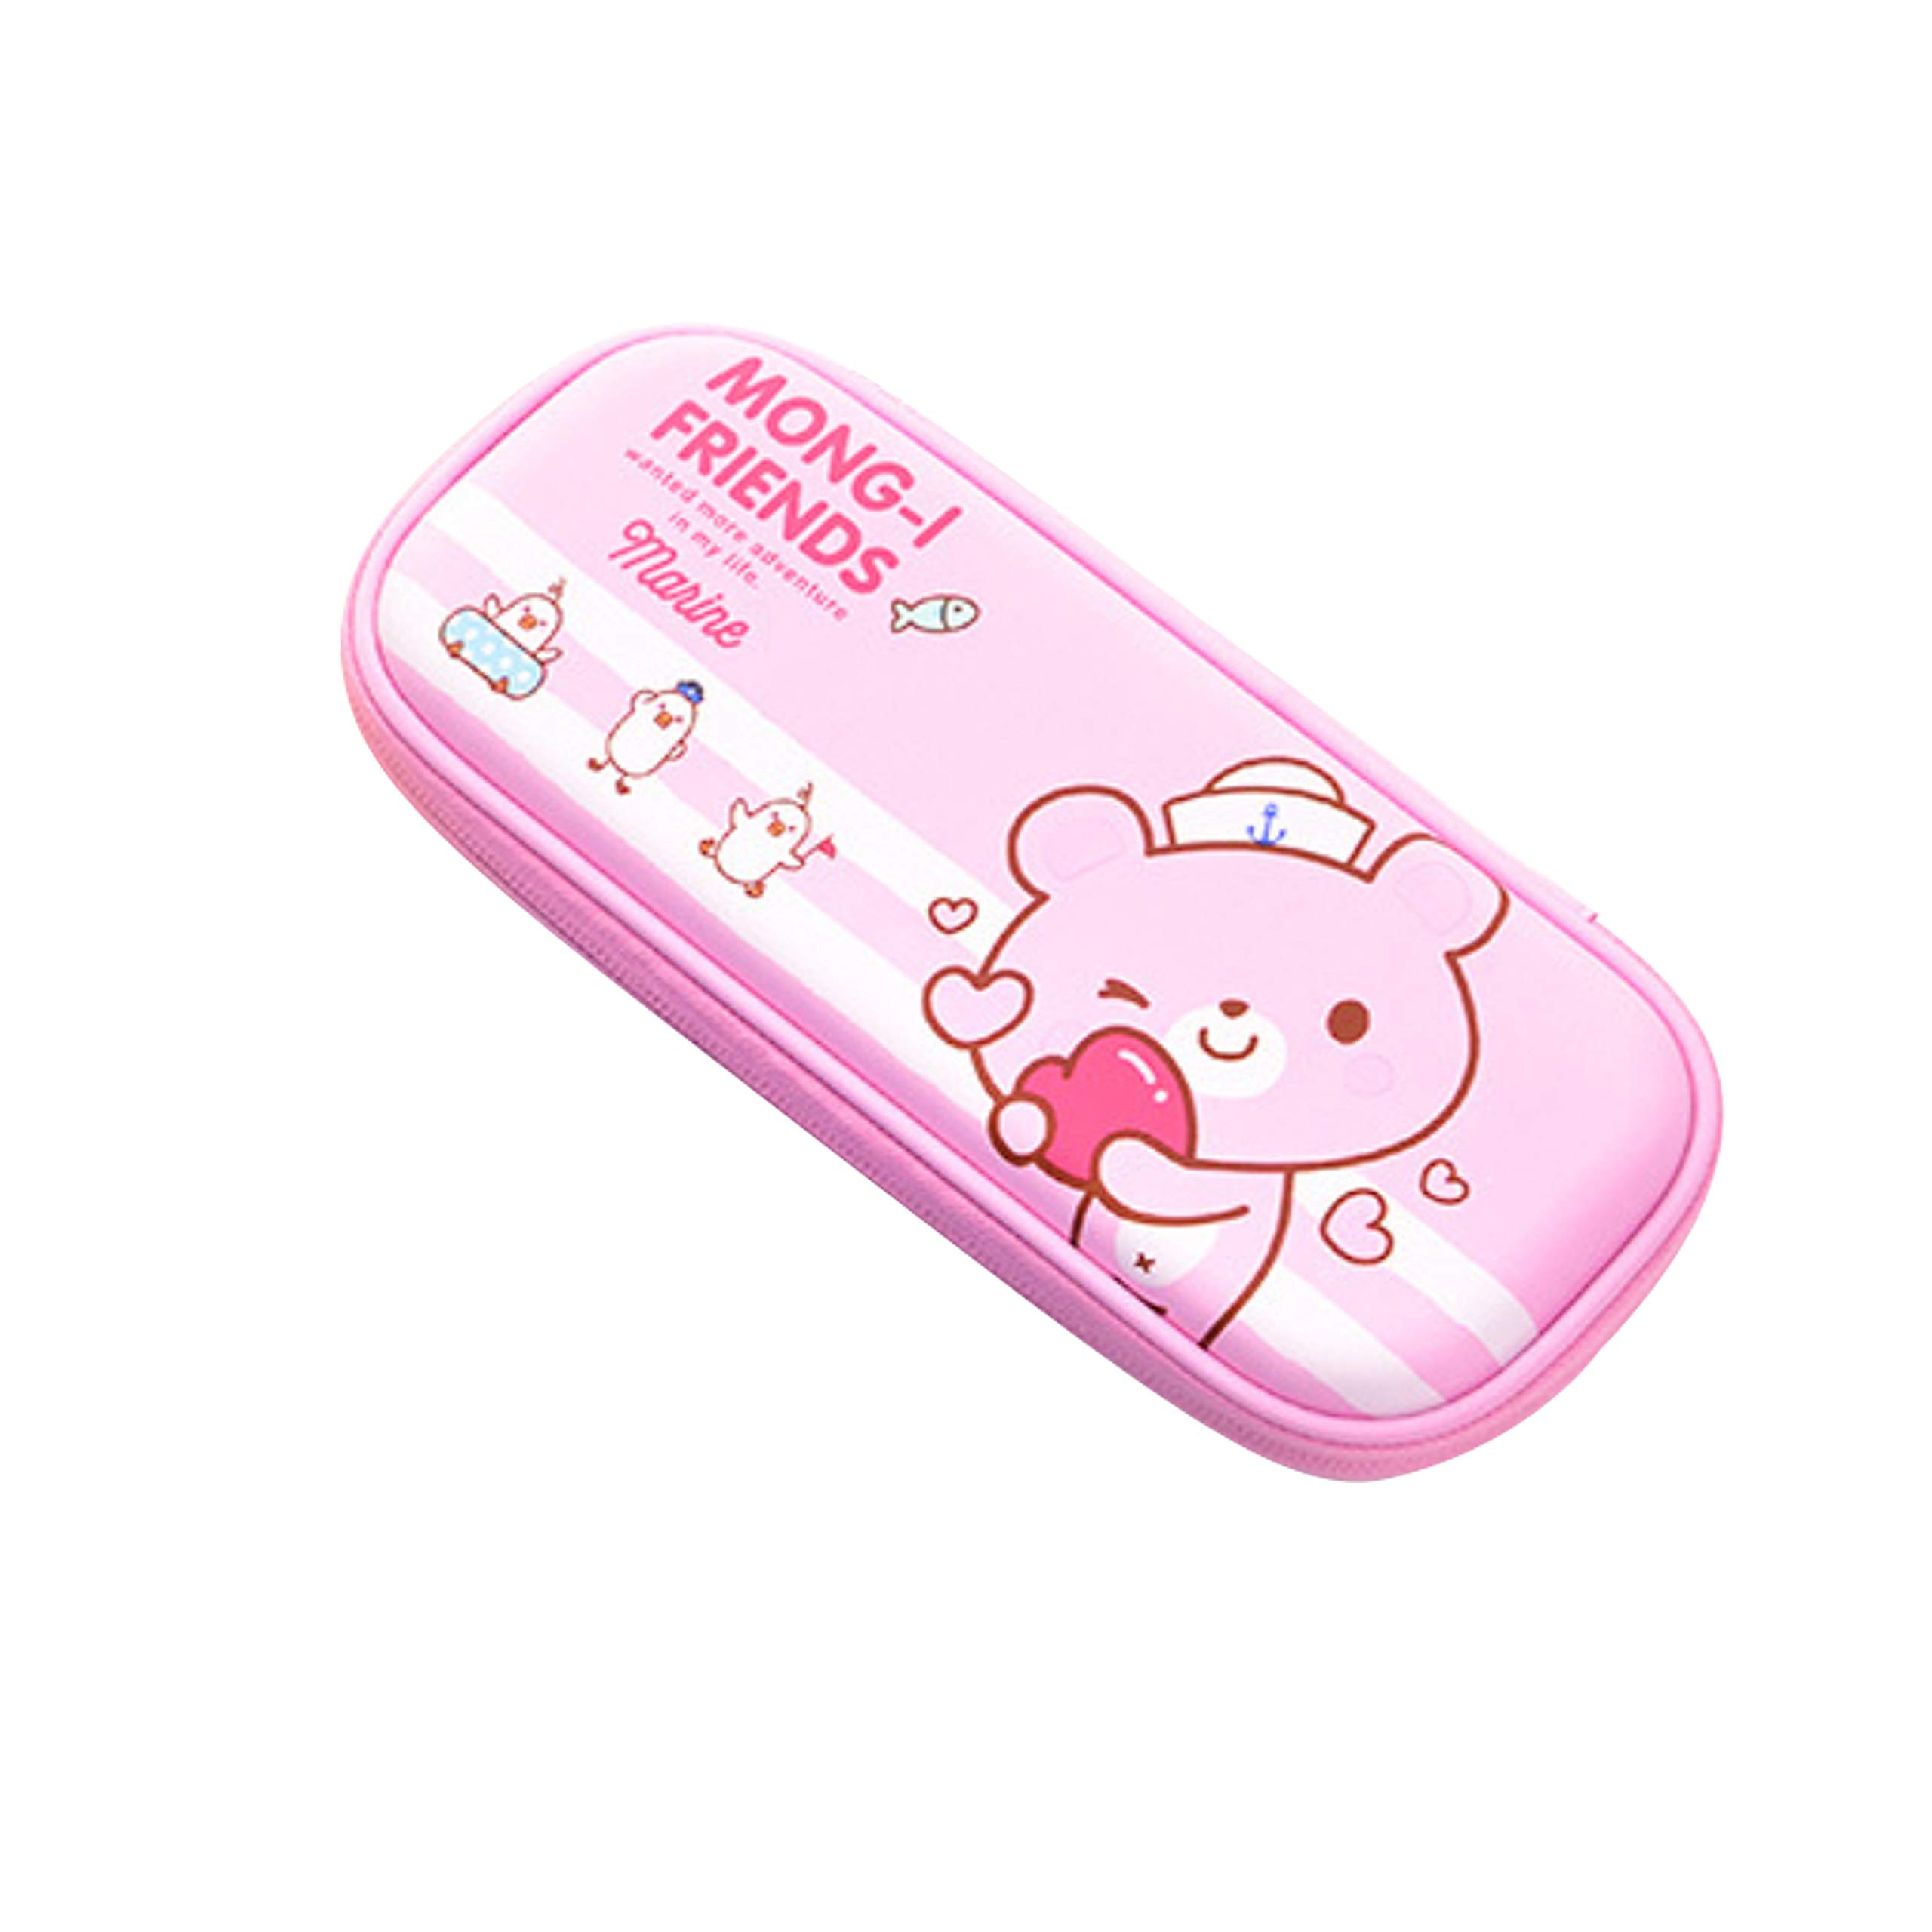 Big Capacity Pencil Case by Hitos | Cute Animal Pencil Box for Kids, Teens, Cute, Colorful Pencil Bag for School (Pink)